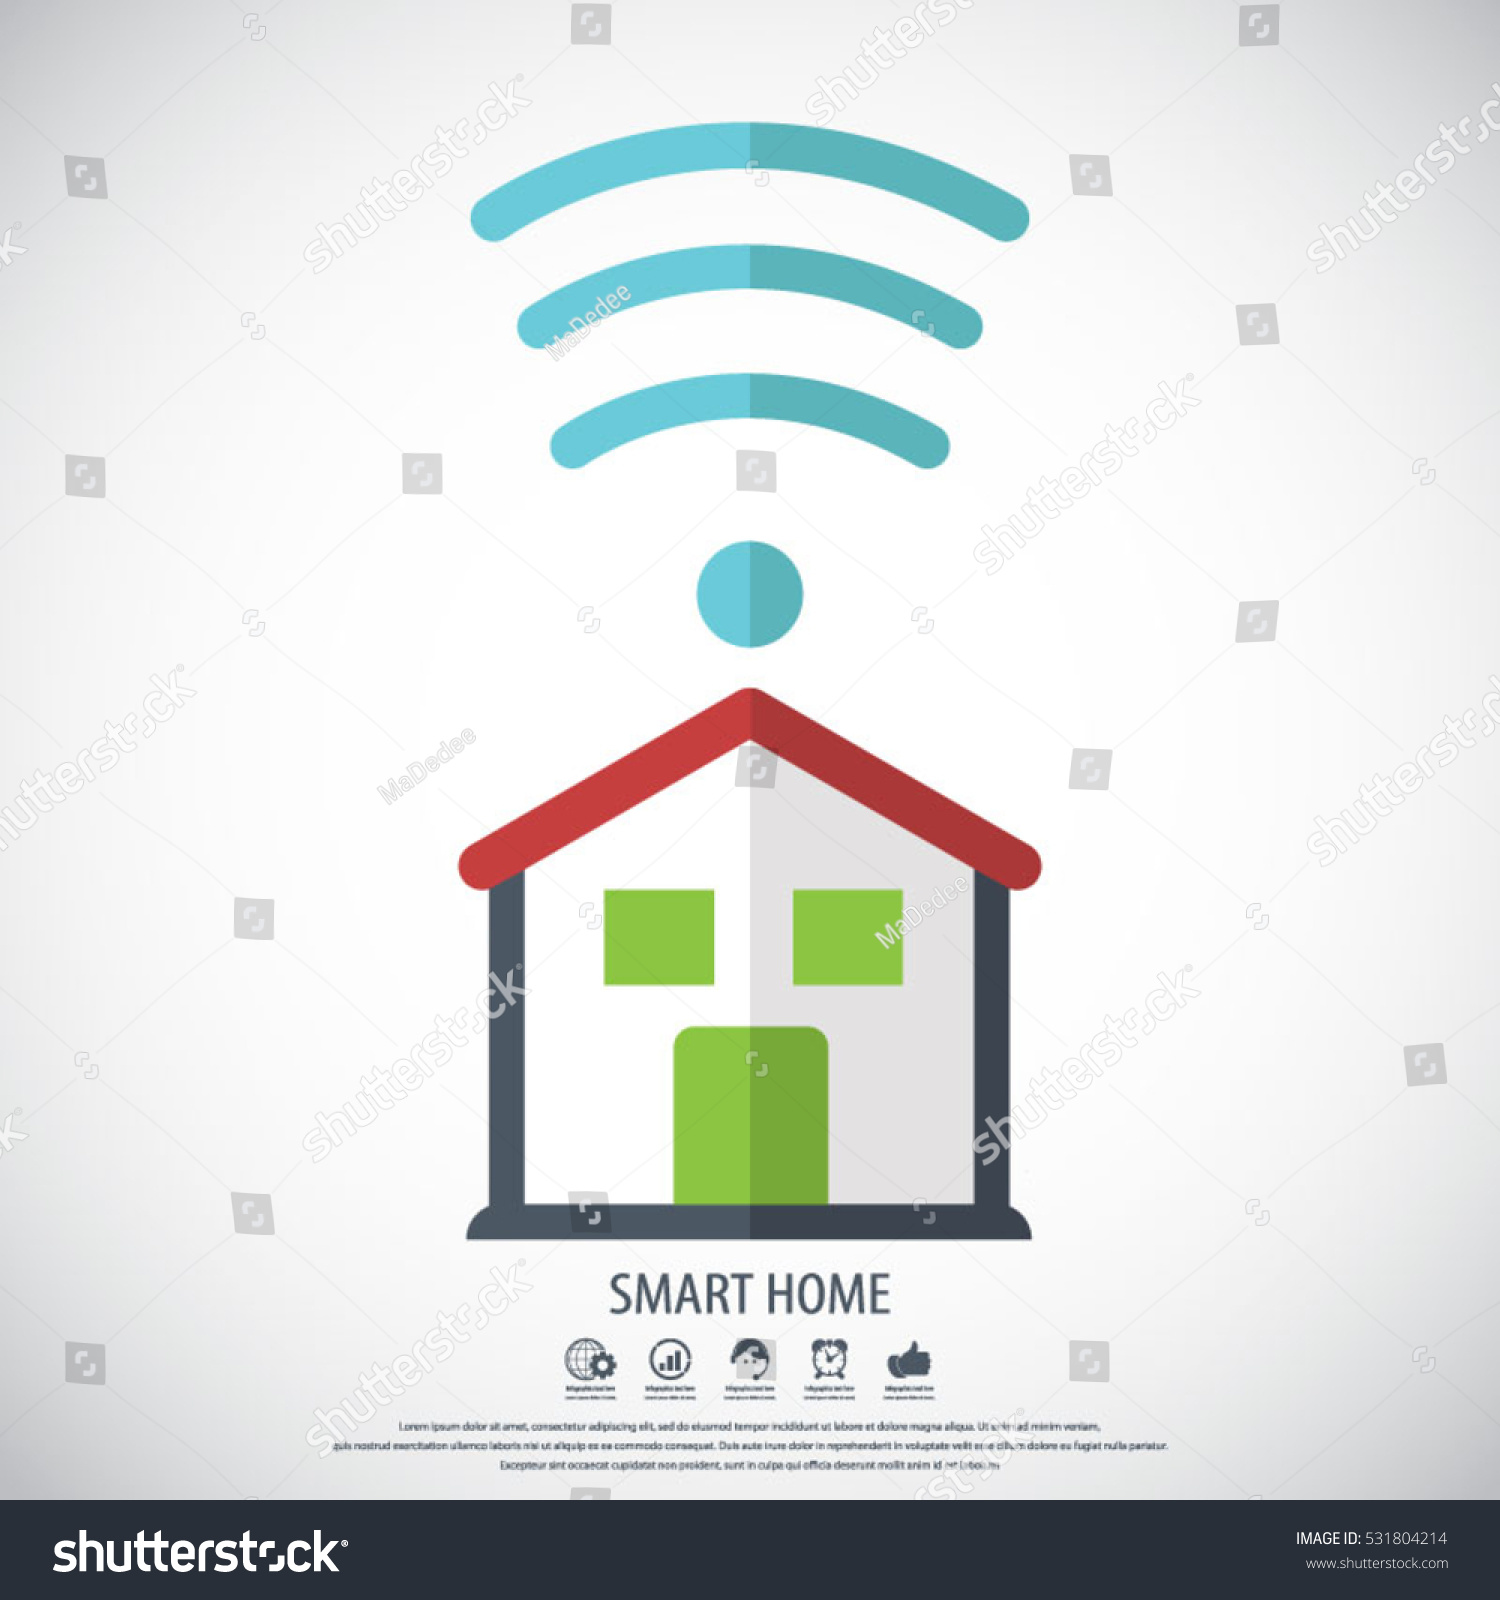 Smart Home Icon Element Cards Poster Stock Vector 531804214 ...